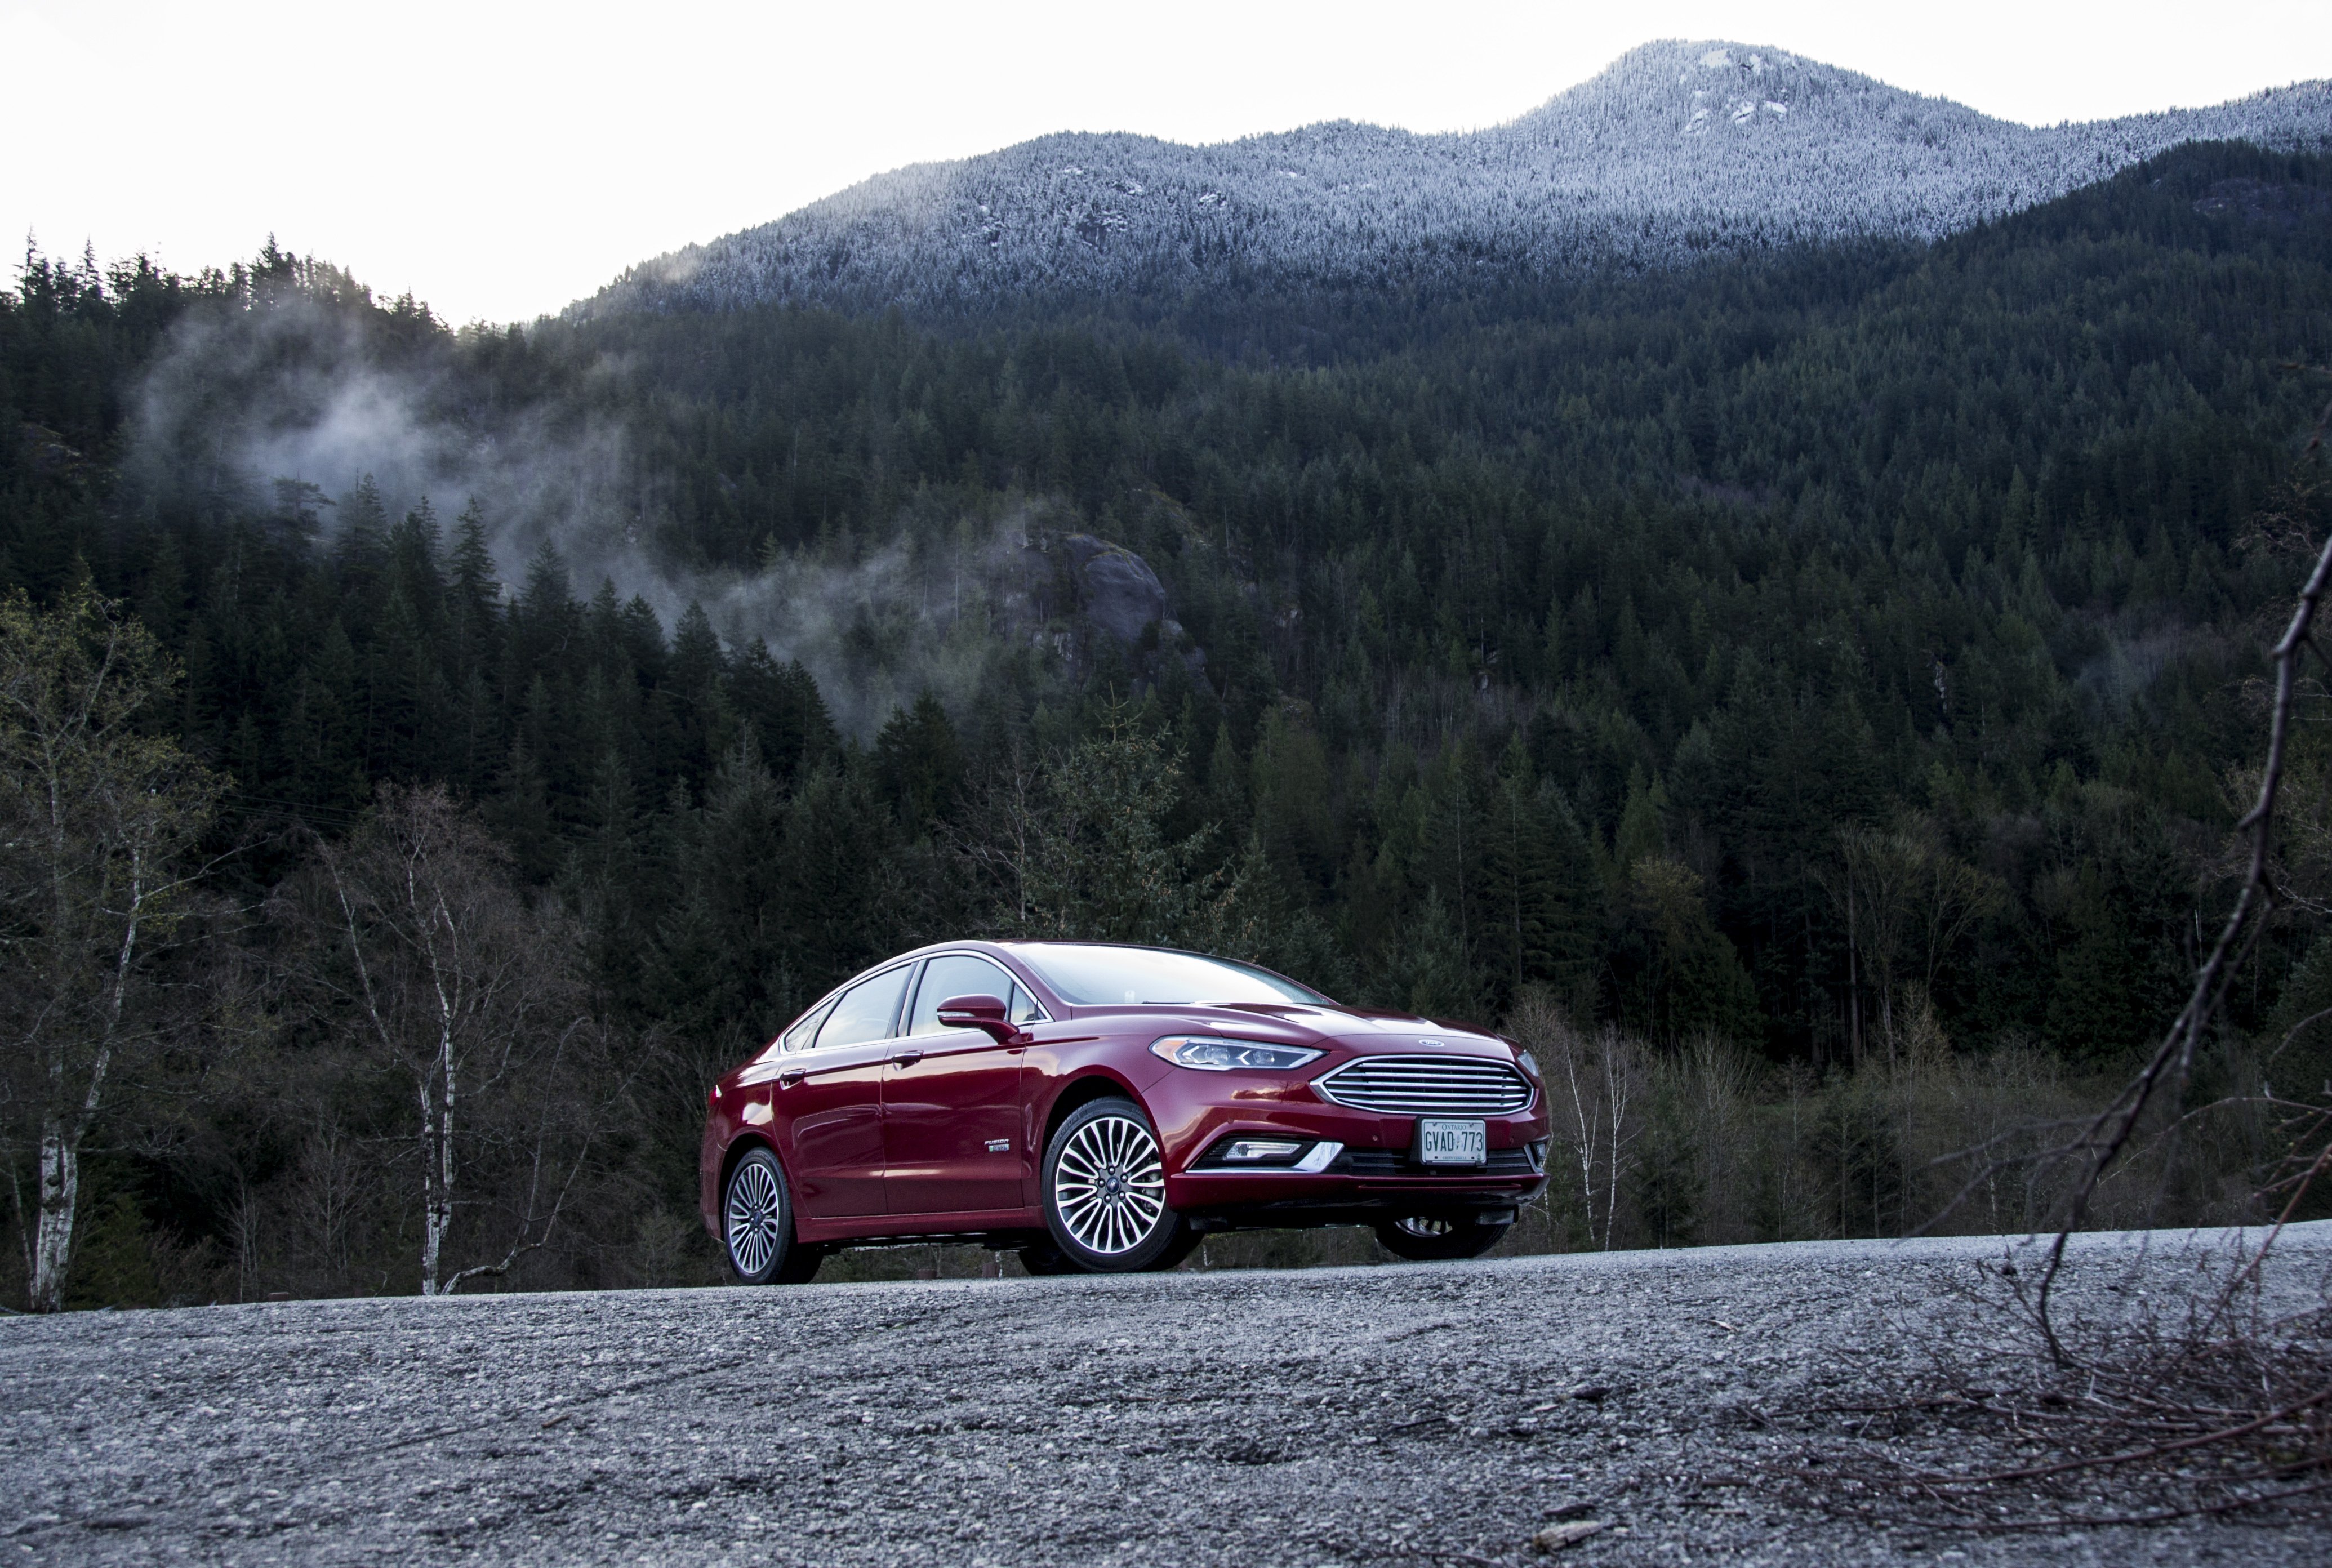 hybrid car, ford car, fusion, enerji, energy, car, car for managers, ford hybrid, 2017, red, burgundy, mountains, ford canada, fordlivegreen, ford cars, fusion, review,